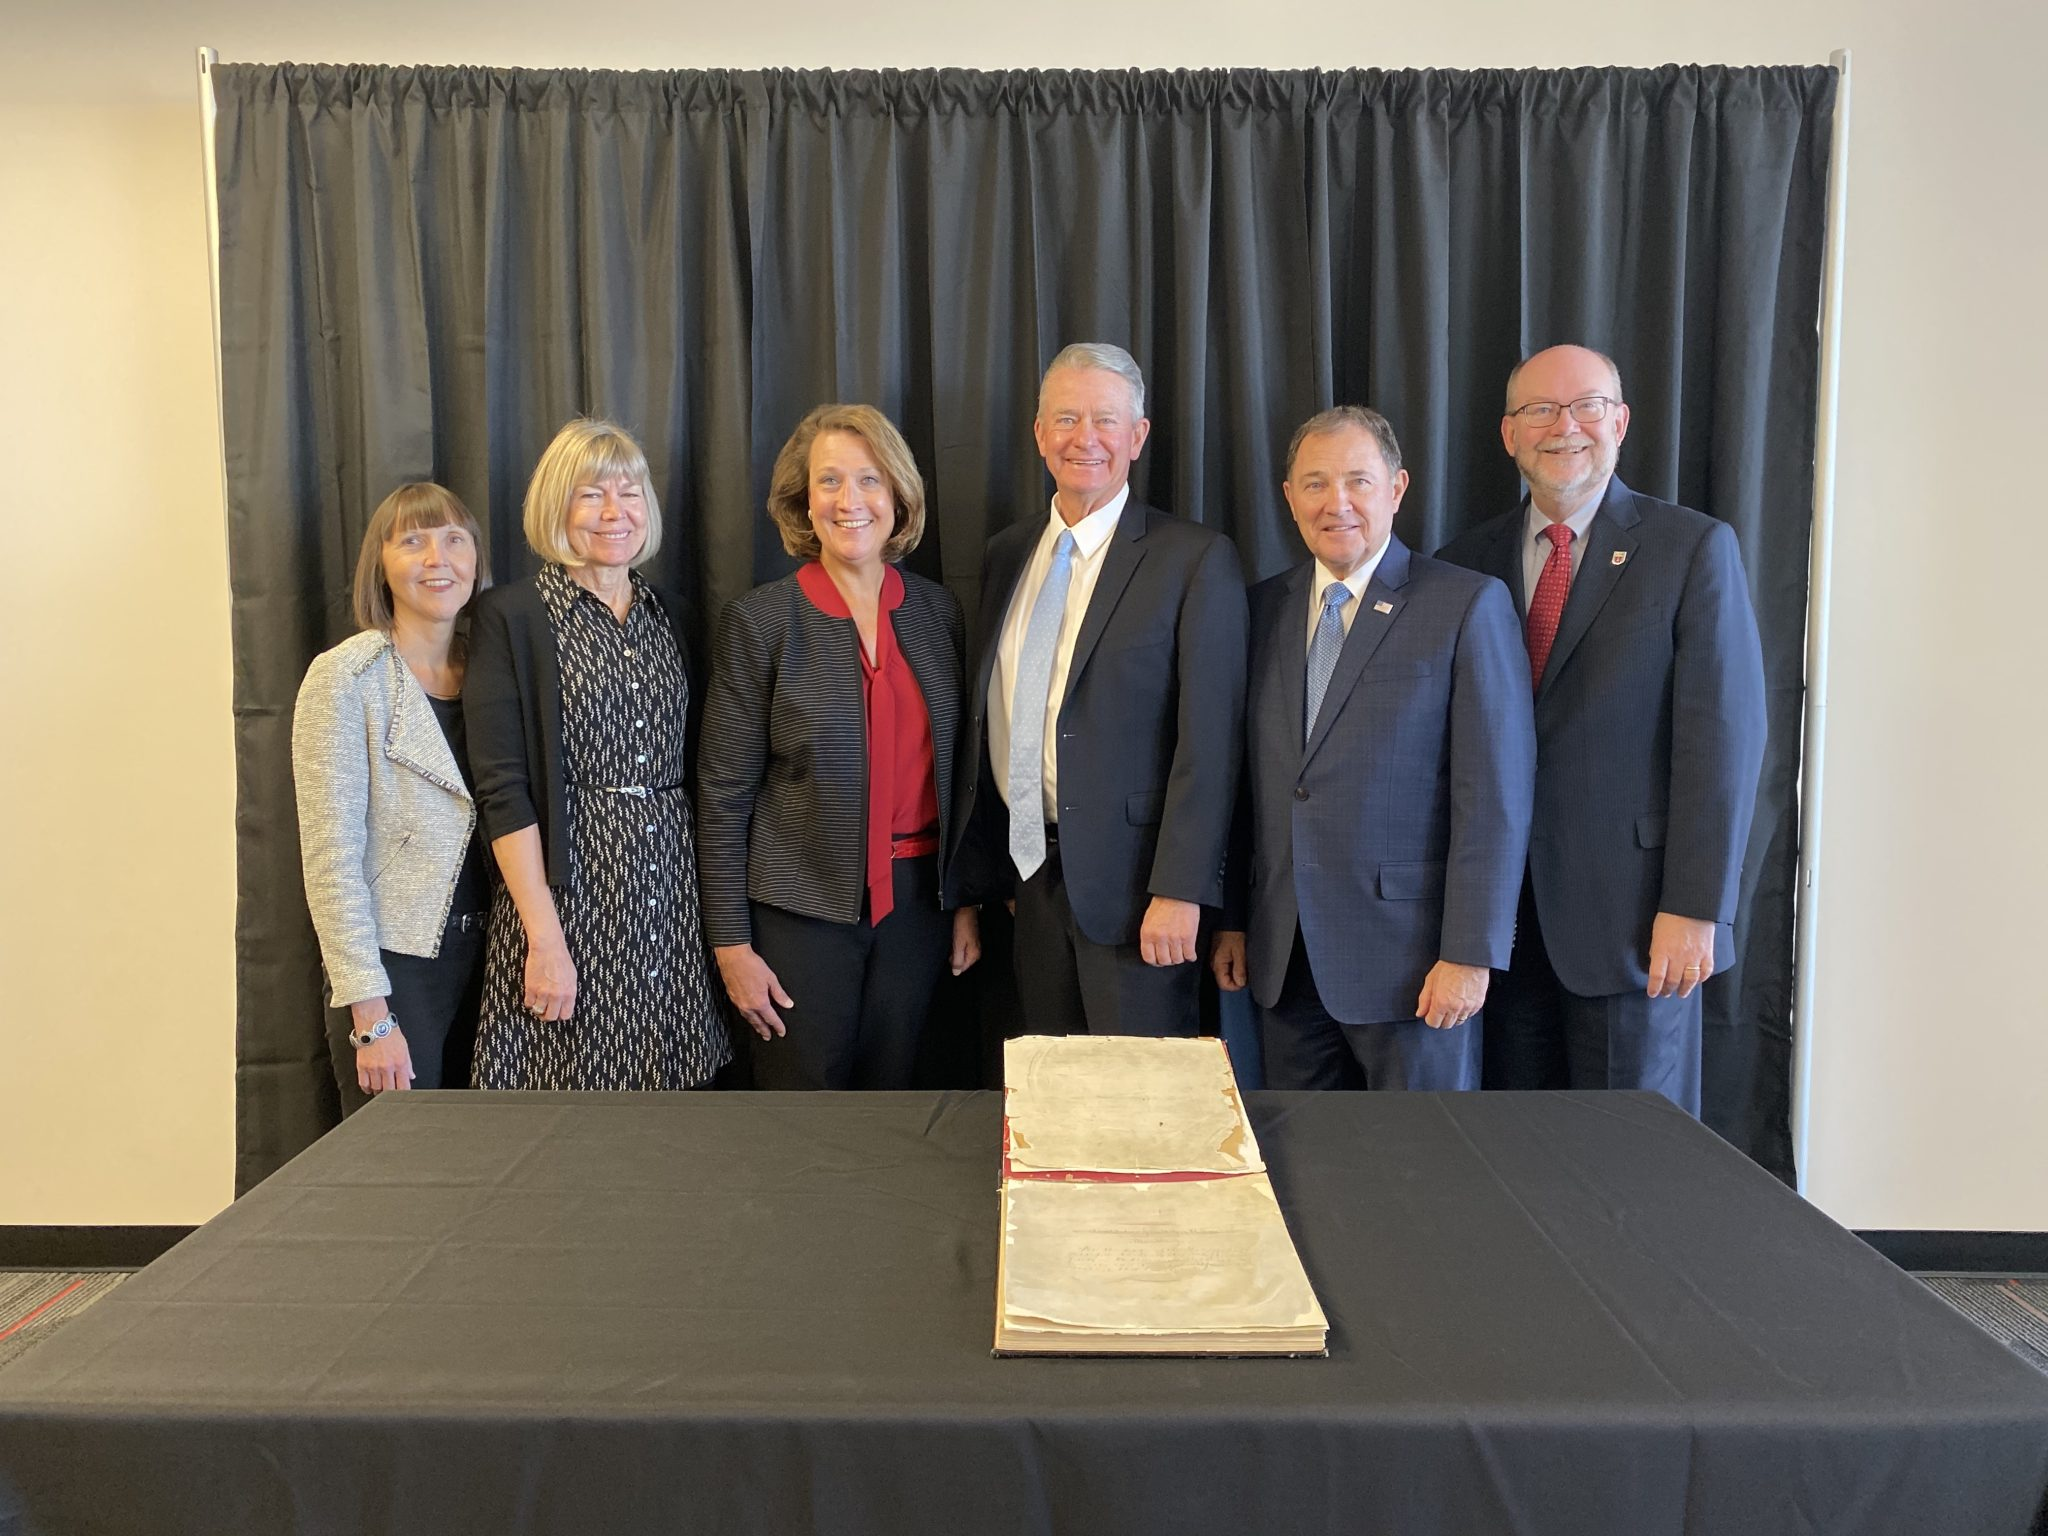 Group Shot: Left to right: Alberta Comer, dean of Marriott Library & university librarian, first lady Teresa Little (Idaho), Ruth Watkins, Pres. University of Utah, Brad Little, Gov. (Idaho), Gary Herbert, Gov. (Utah), Dan Reed, Sr. V.P. for Academic Affairs.